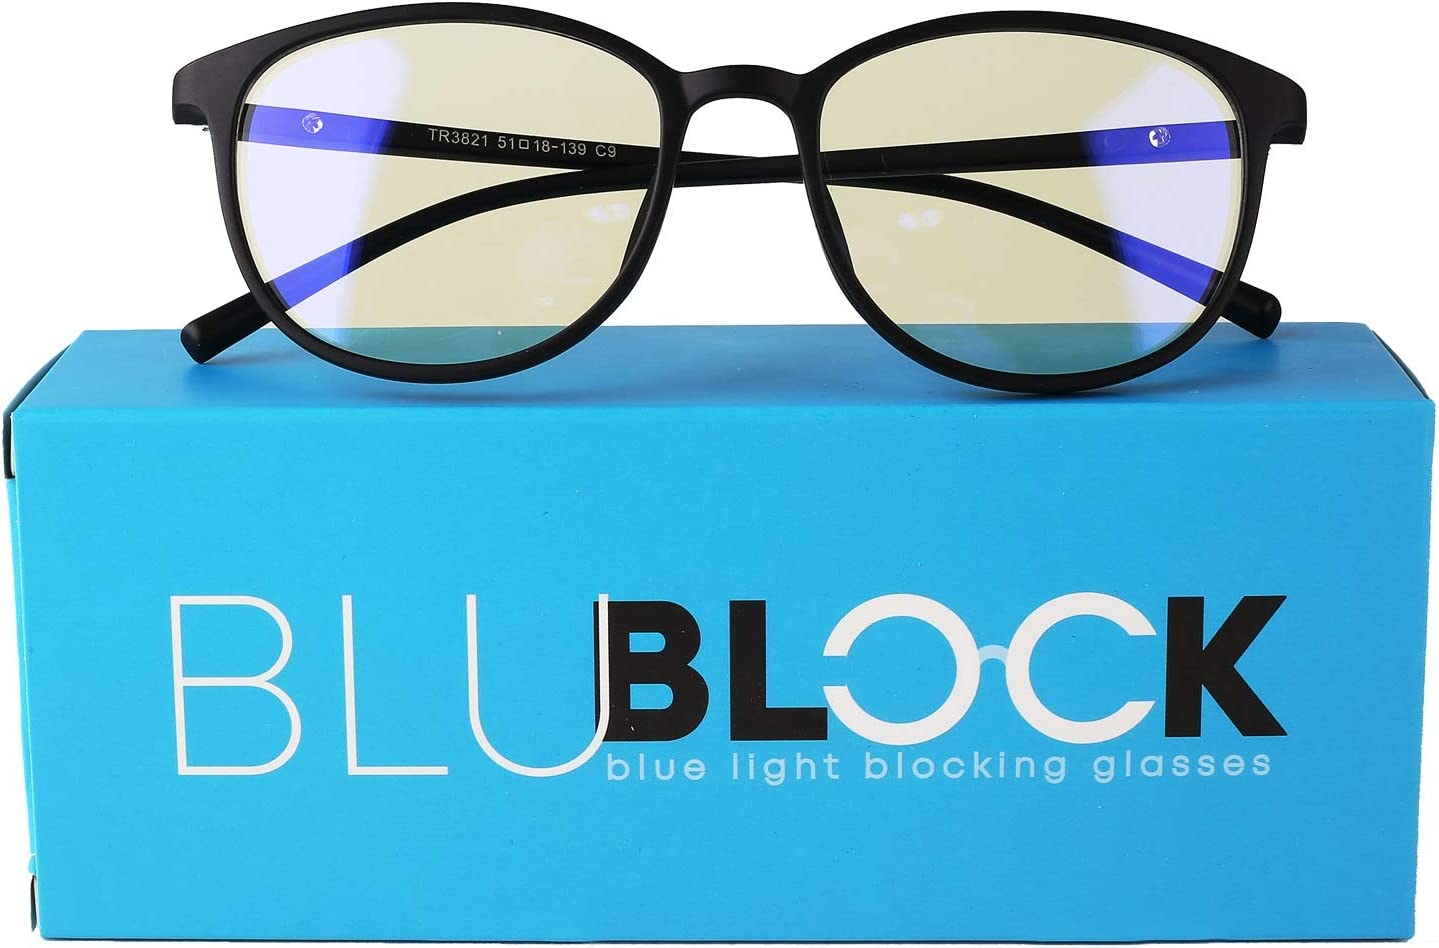 Unisex Blue Light Blocking Glasses - Anti-Blue Filter Eyeglass for Men and Women - Stylish Eyewear Comfortable Eye Protection for UV Glare - Perfect for Laptop, Computer or Cellphone   by BluBlock